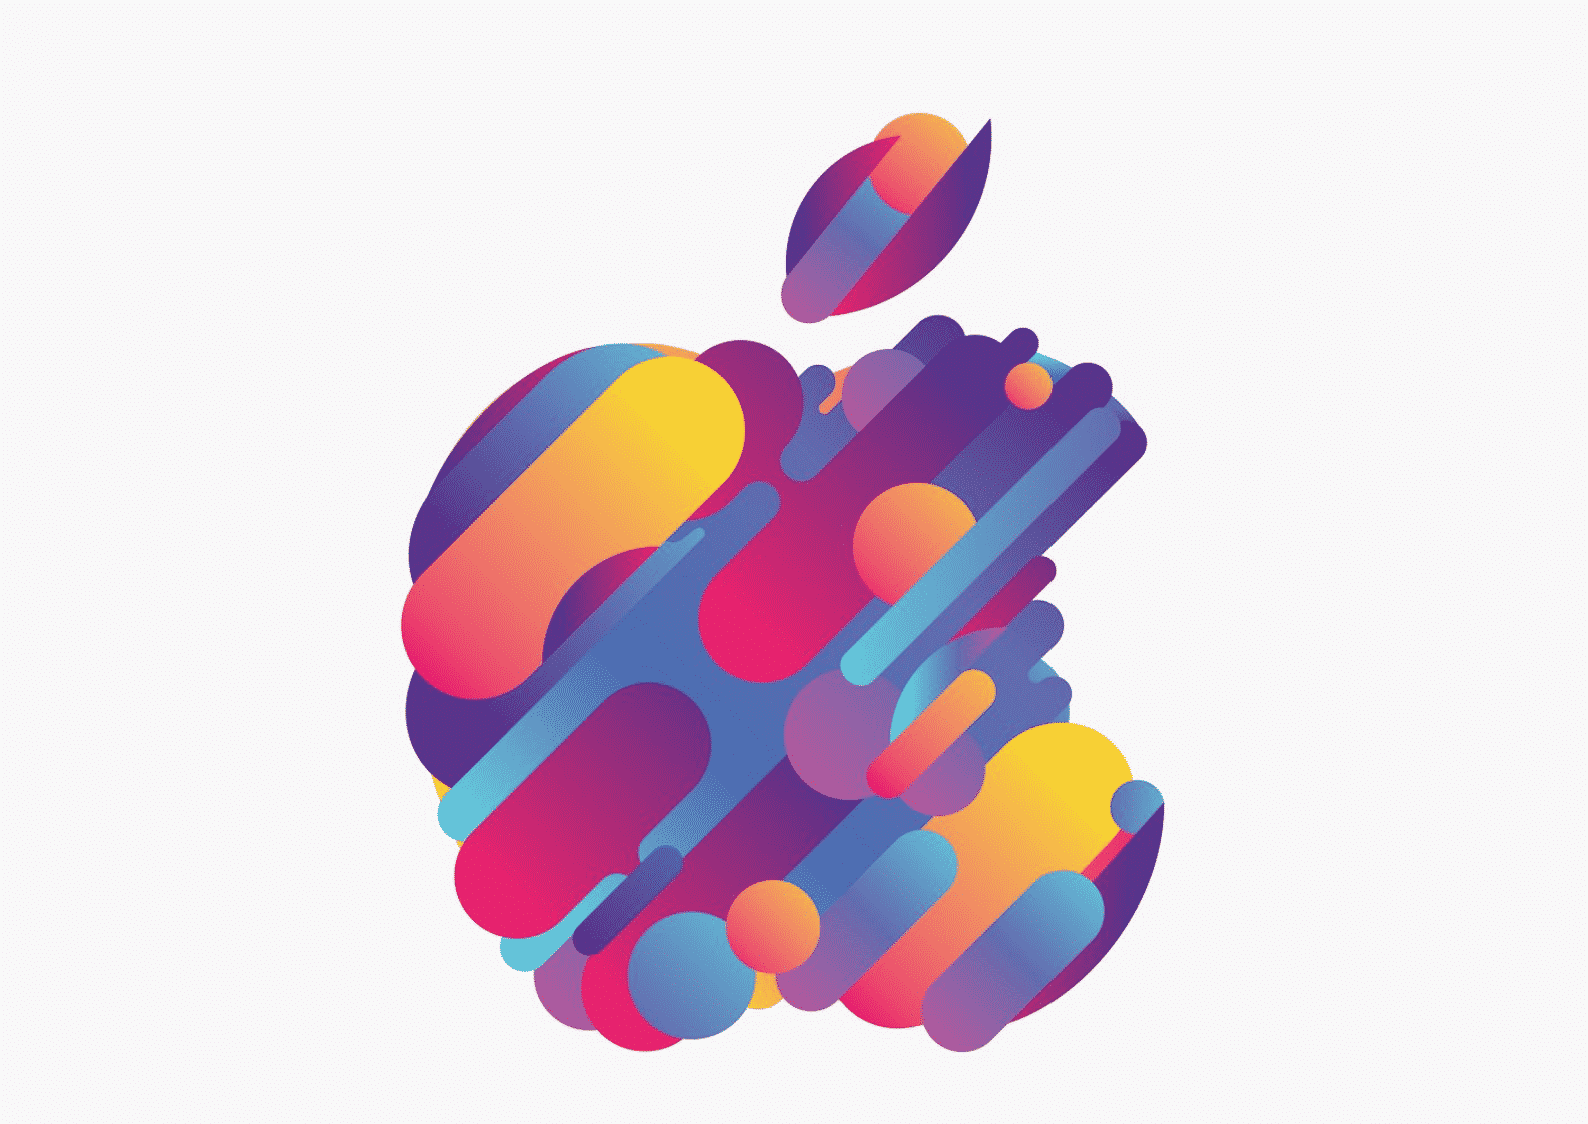 America's Largest Companies Ranks Apple at Number 4